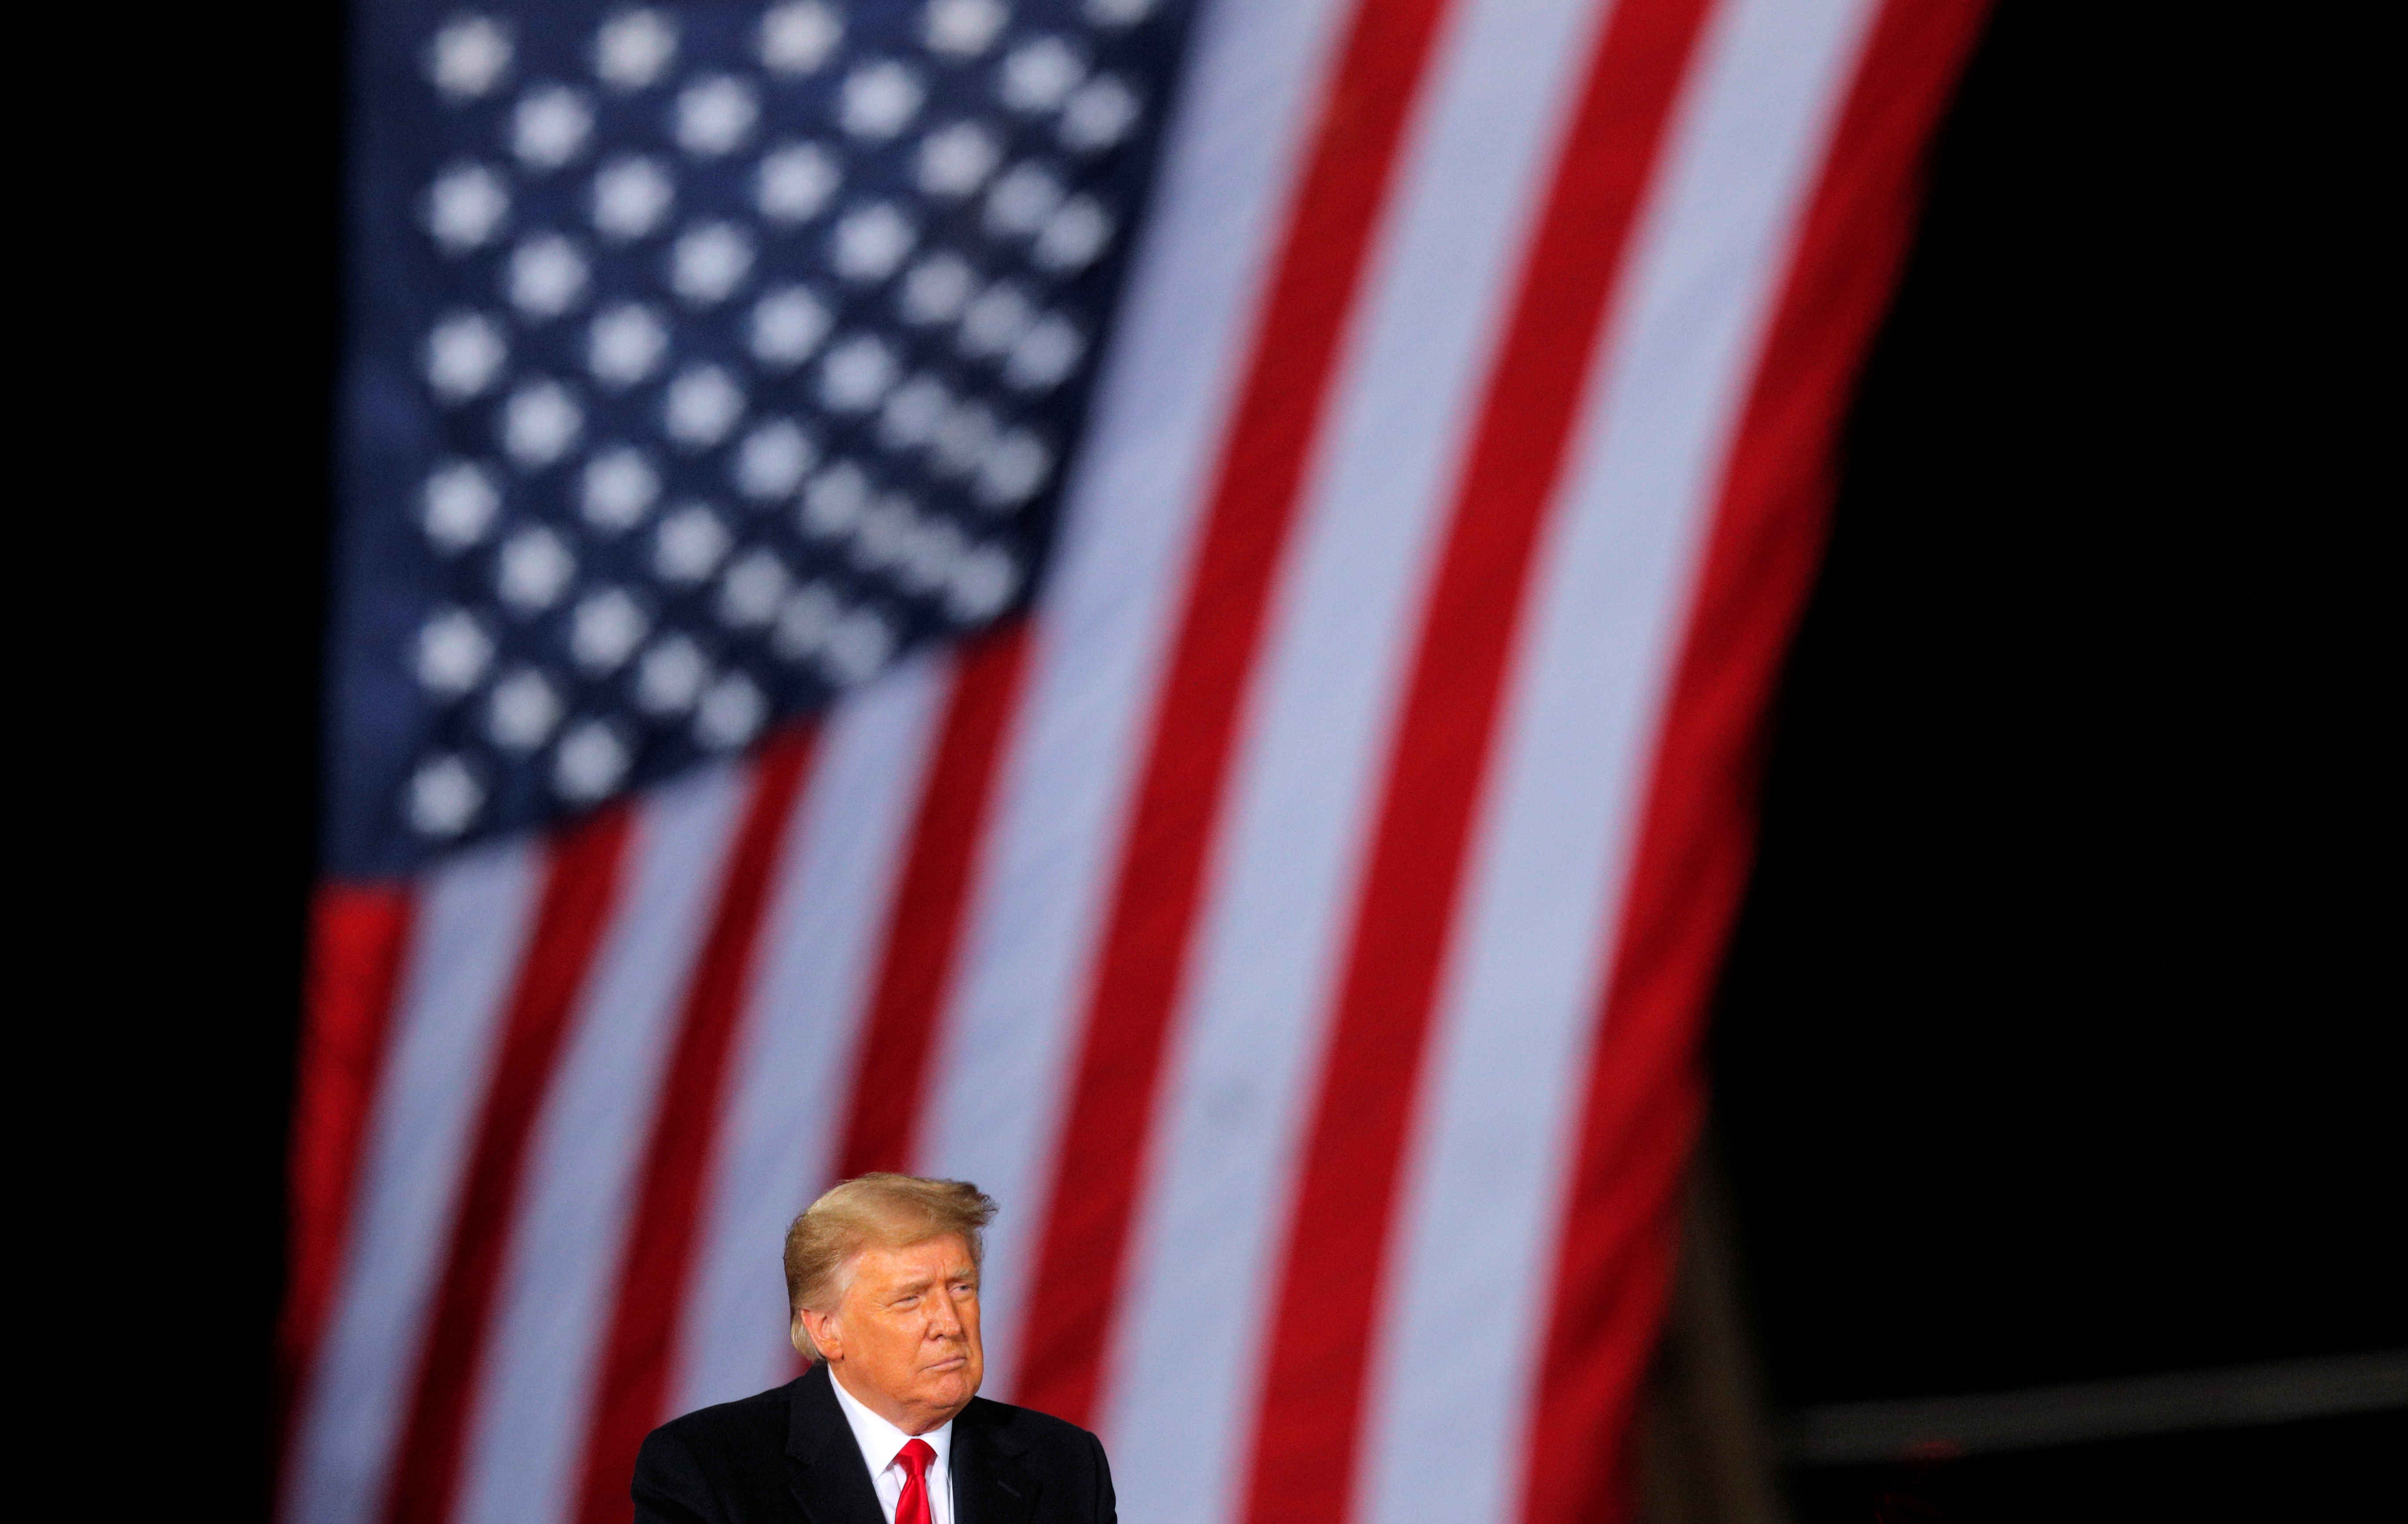 U.S. President Donald Trump is seen in front of a U.S. flag while campaigning for Republican Senator Kelly Loeffler on the eve of the run-off election to decide both of Georgia's Senate seats, in Dalton, Georgia, U.S., January 4, 2021. REUTERS/Brian Snyder/File Photo